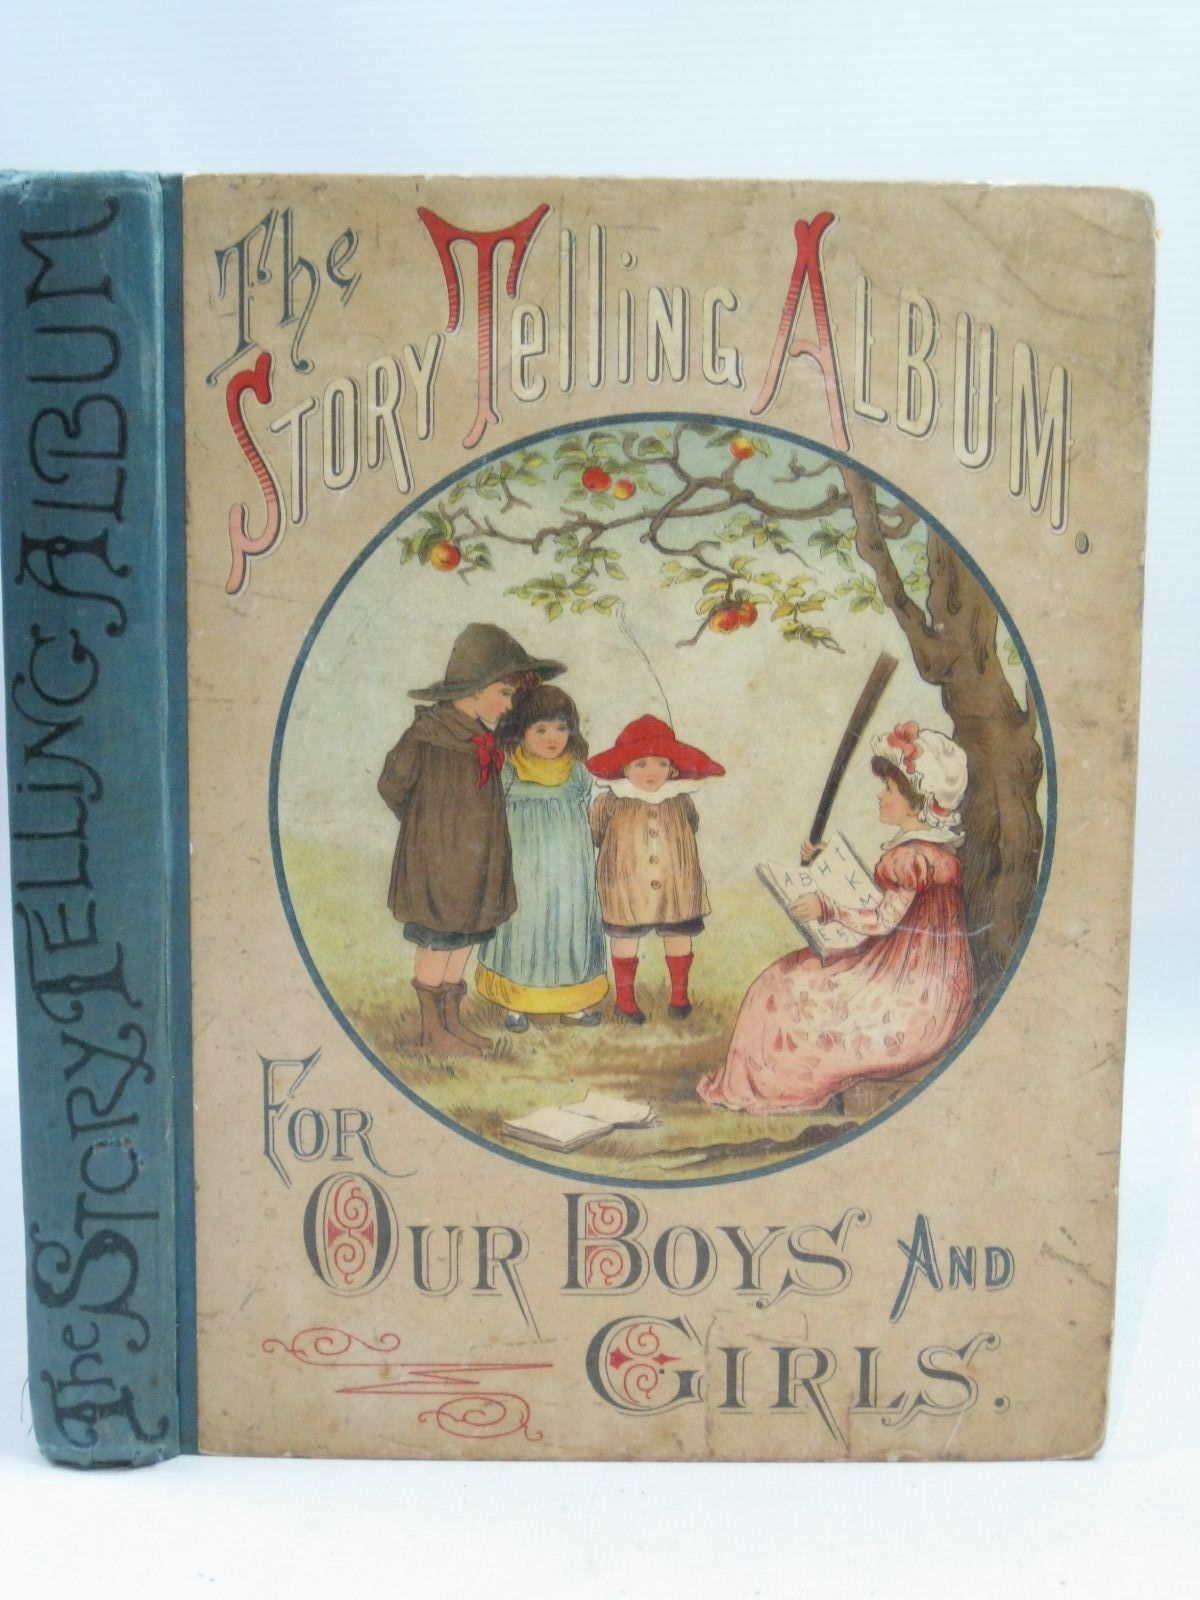 Photo of THE STORY TELLING ALBUM FOR OUR BOYS AND GIRLS published by Wells Gardner, Darton And Co (STOCK CODE: 1404993)  for sale by Stella & Rose's Books